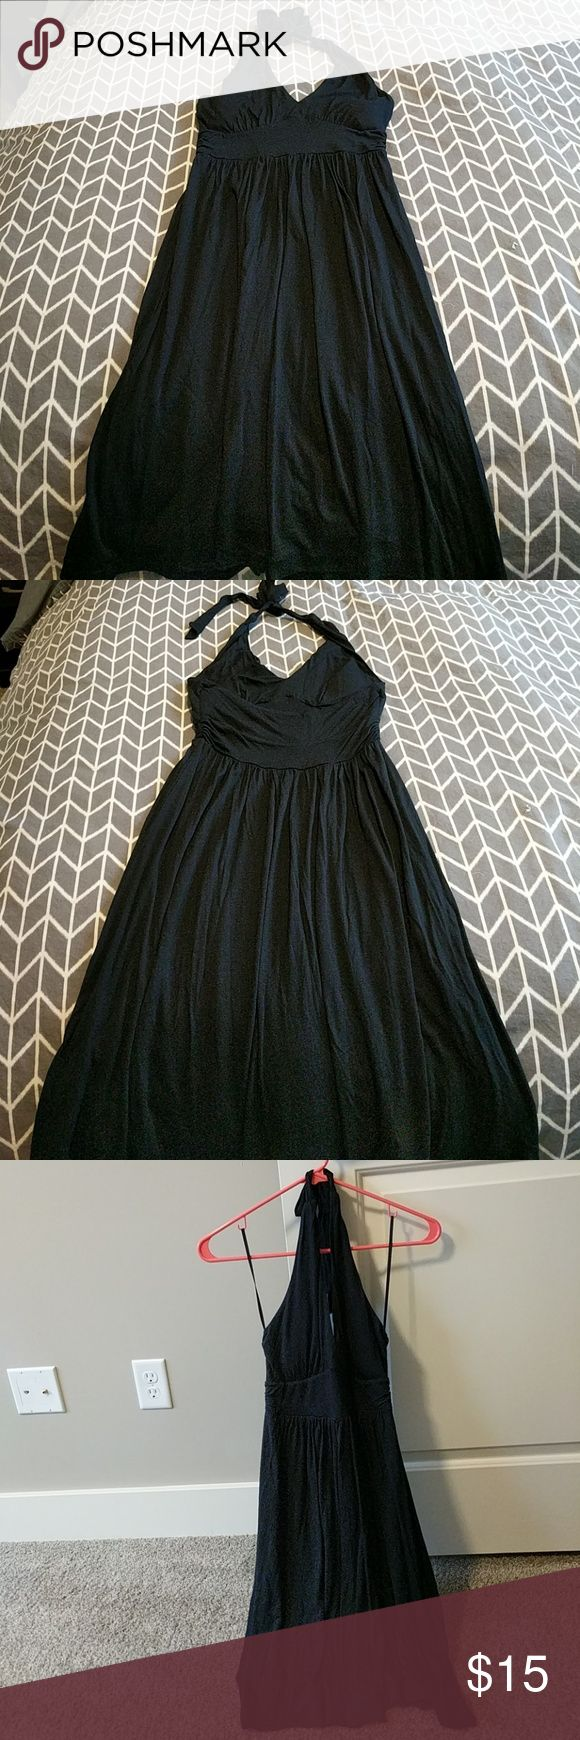 Black Flowy Halter Sundress Black halter sundress. A-line and flowly. Has padding in the cups Banana Republic Dresses